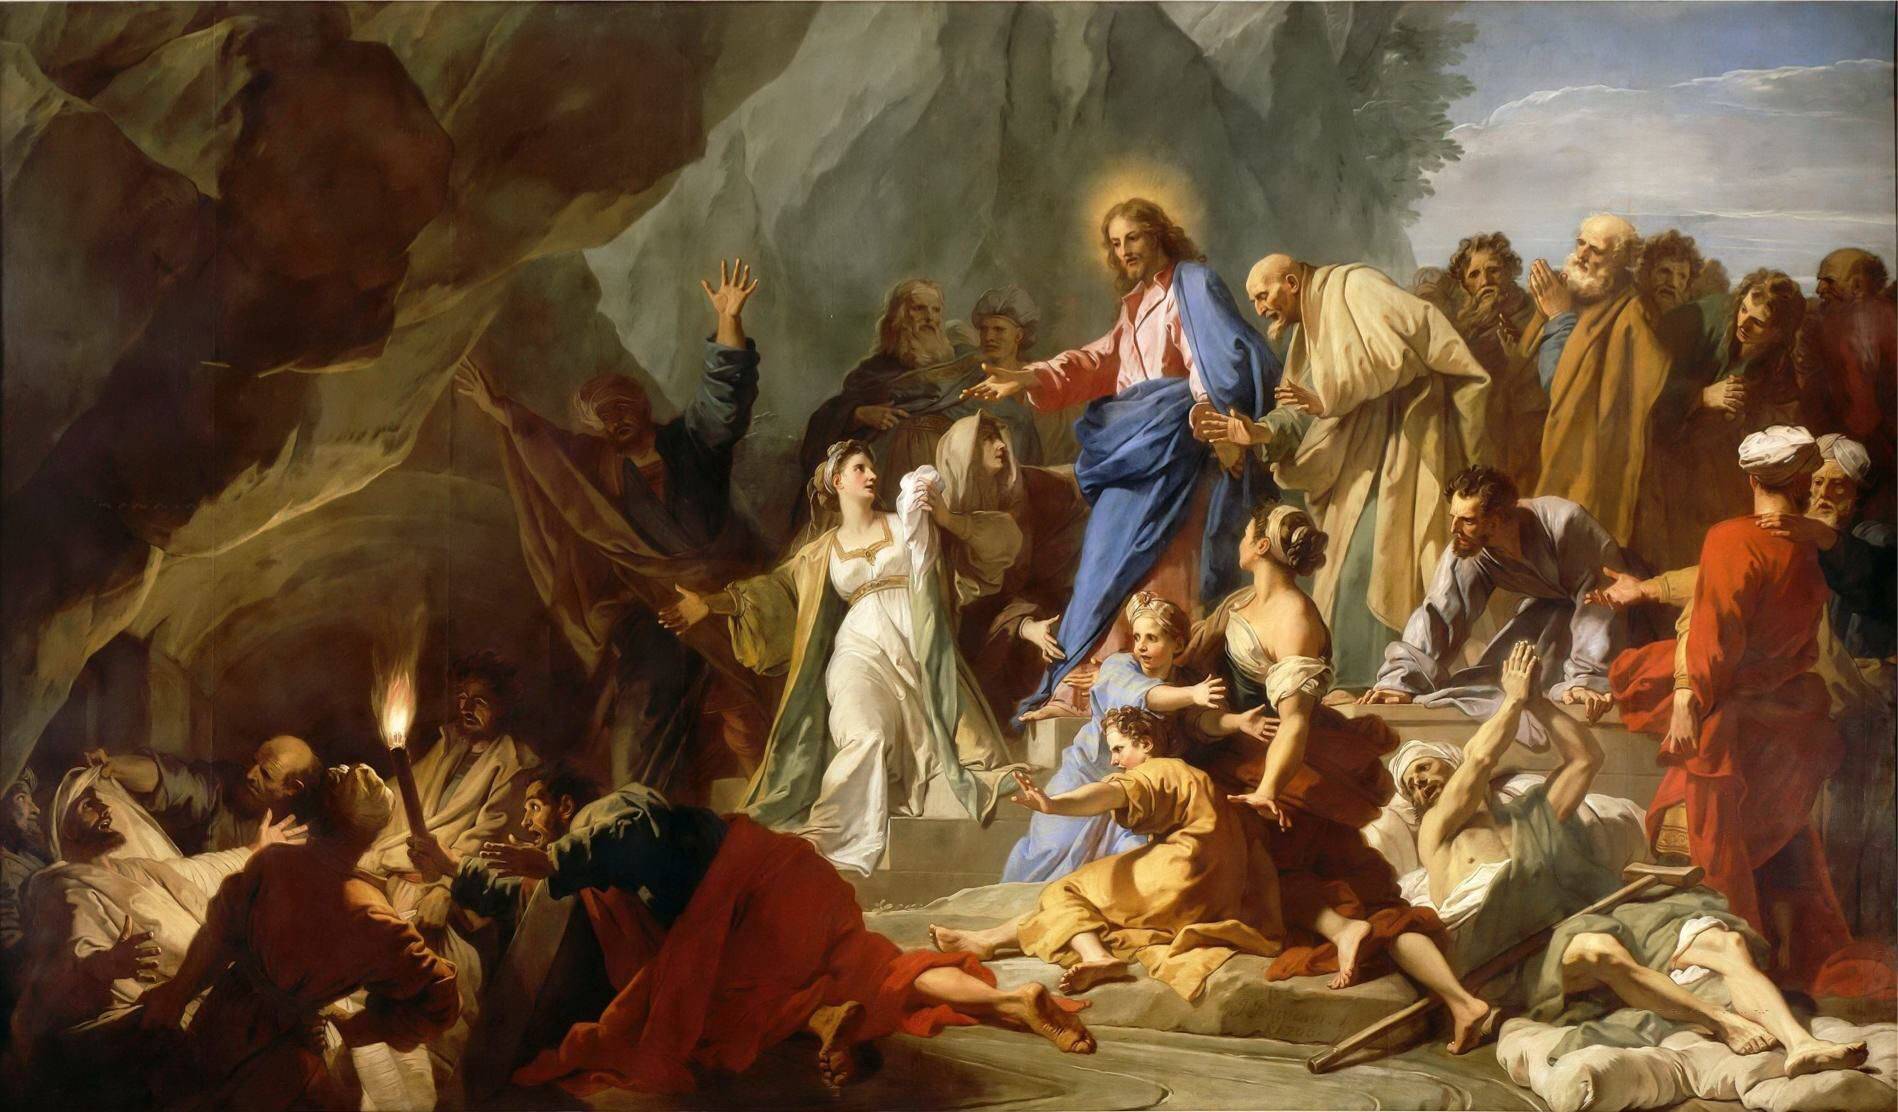 Jean-baptiste Jouvenet - Resurrection of Lazarus